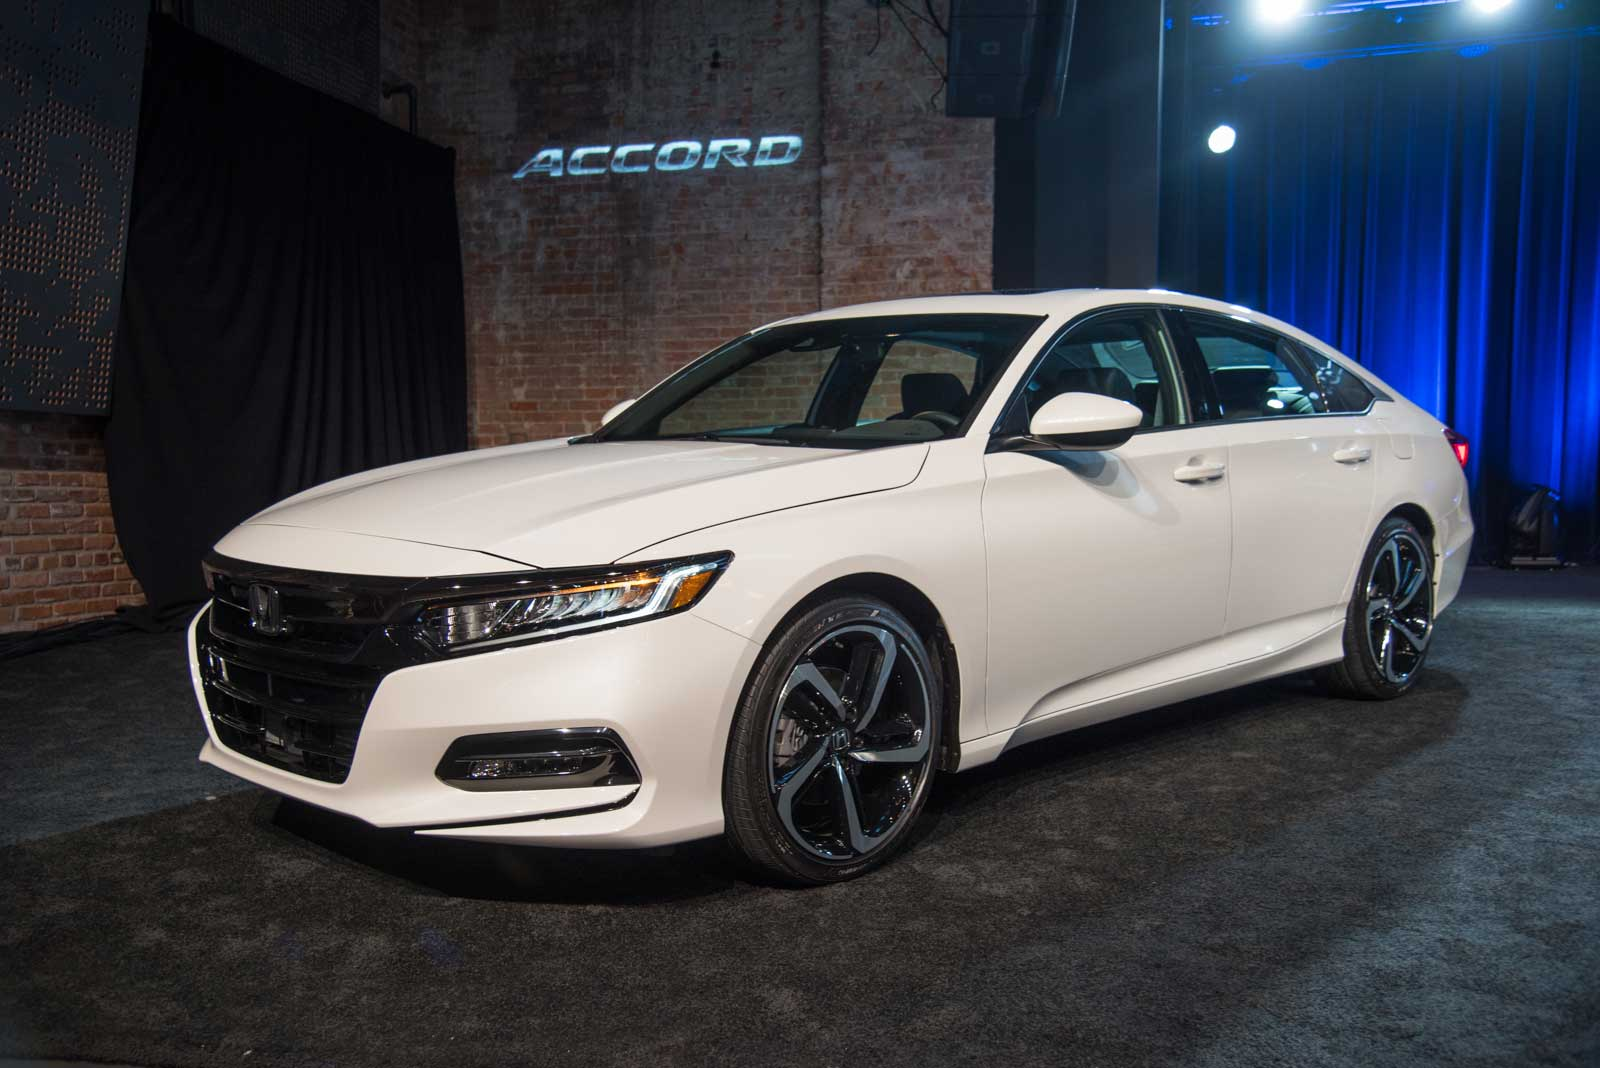 2018 honda accord debuts with turbo engines 10 speed for 2018 honda accord manual transmission